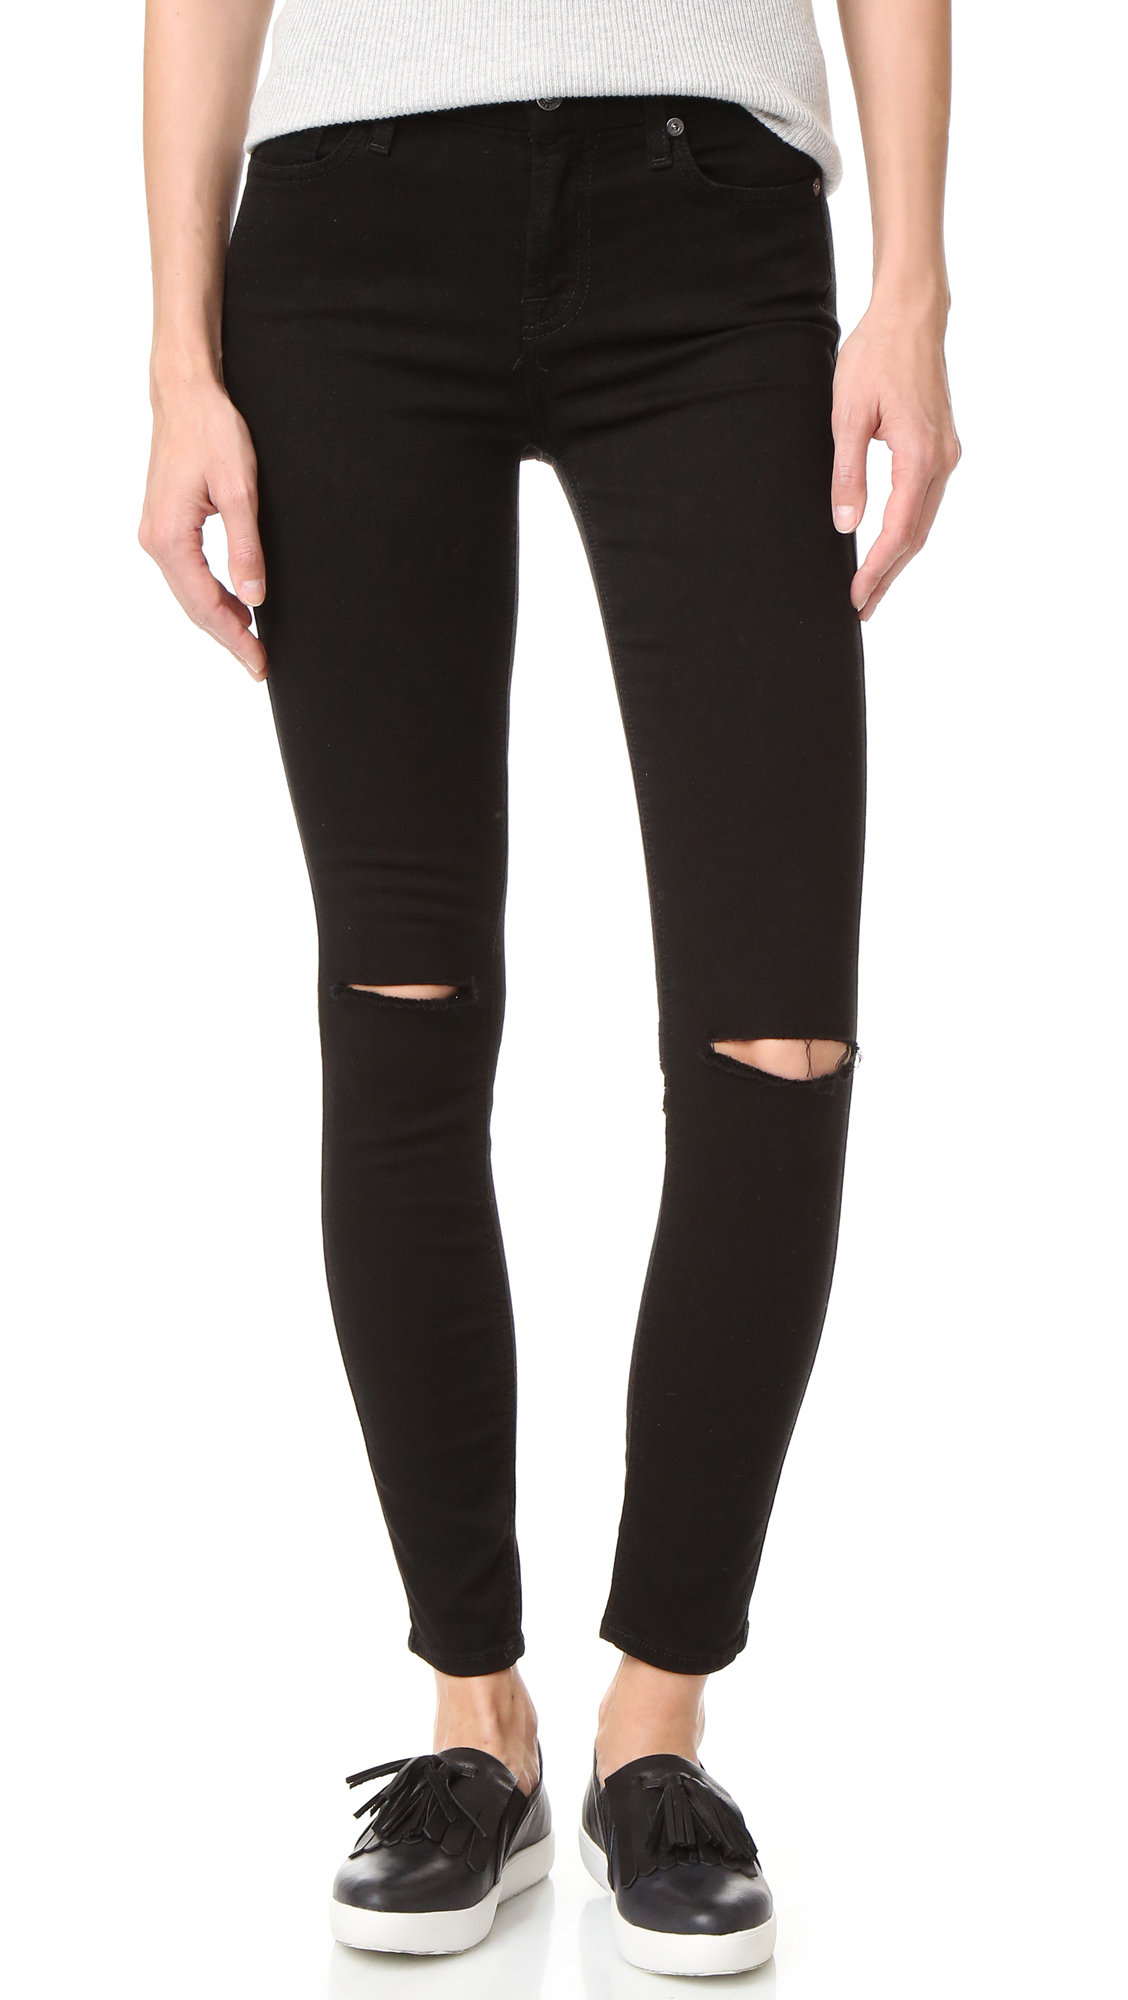 7 For All Mankind ripped black jean